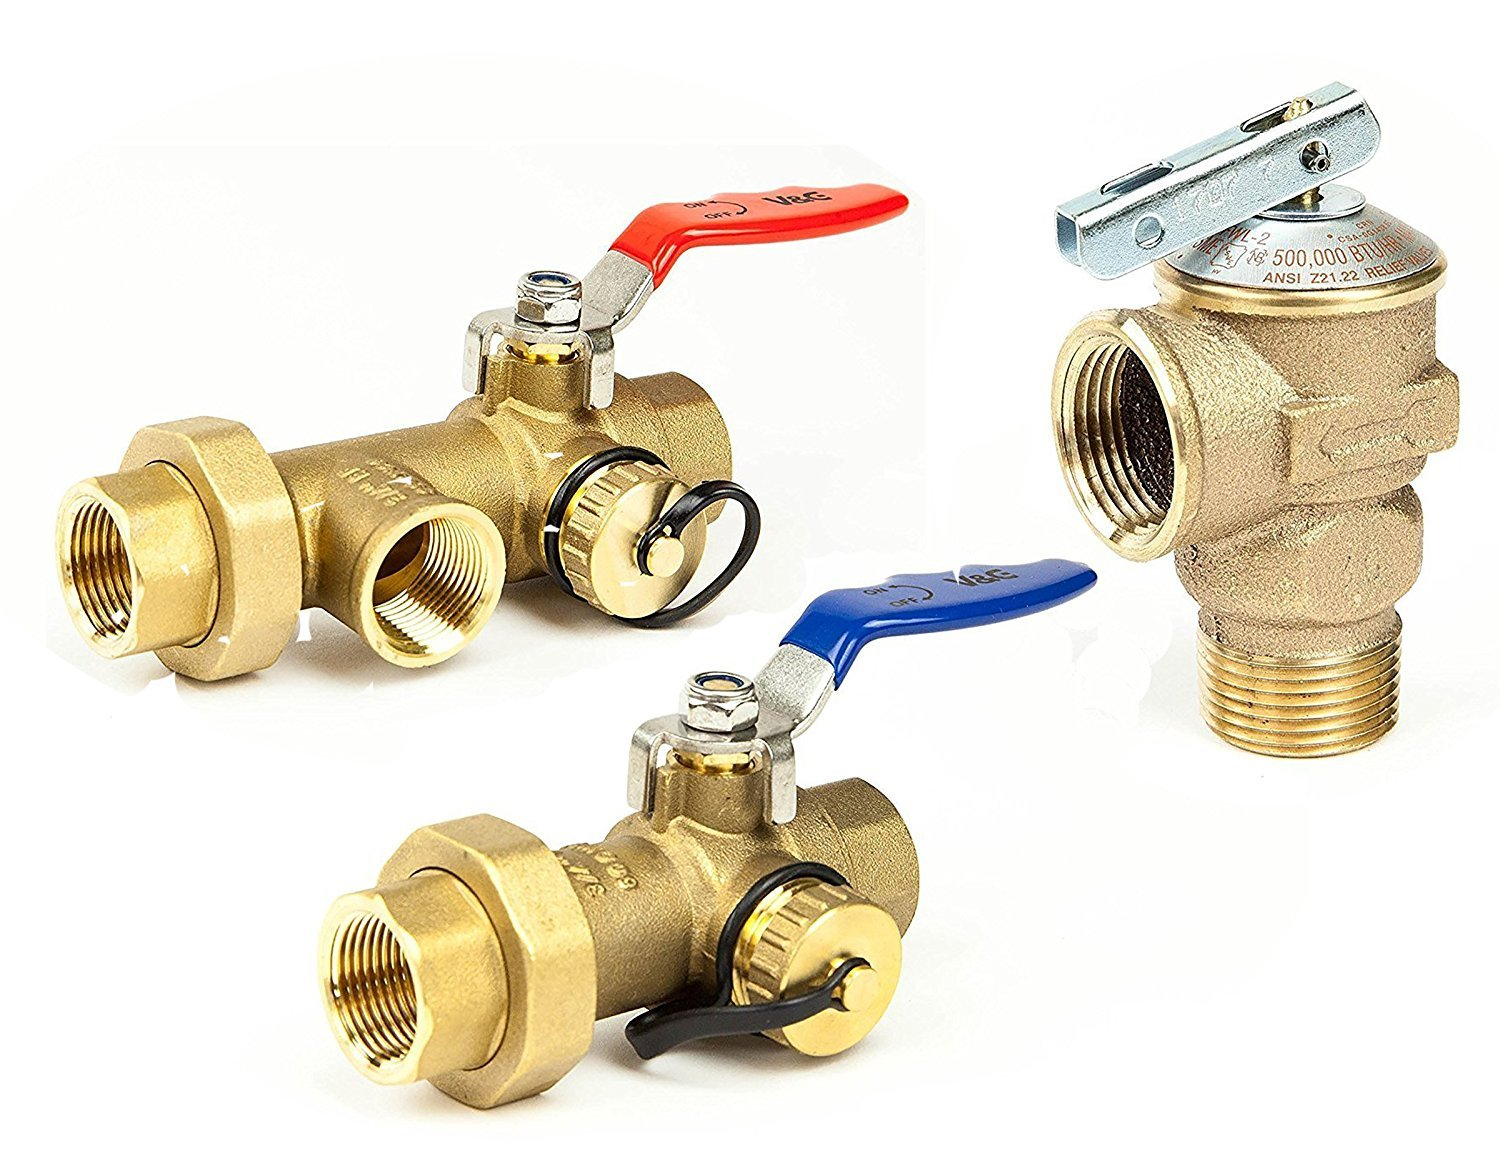 Rheem Tankless Water Heater Isolation Valves Kit With Relief Valve Threaded